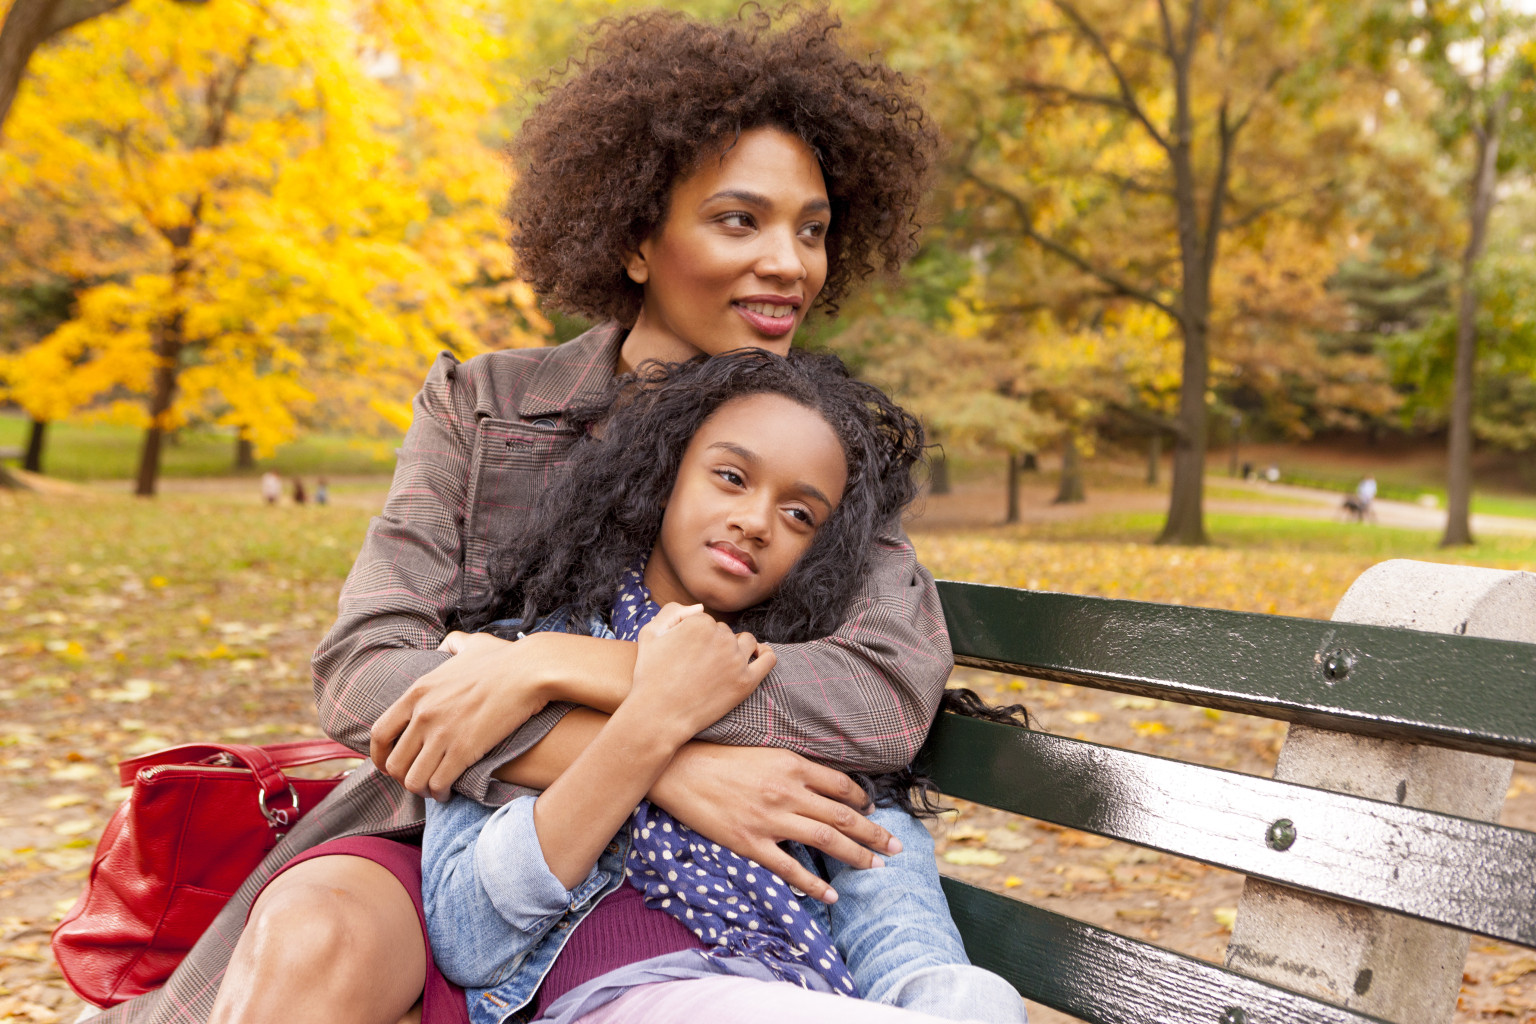 challenges single moms face Single moms tend to face many mental health challenges, including sleep deprivation, self-neglect, judgment, conflicts with an ex and more.